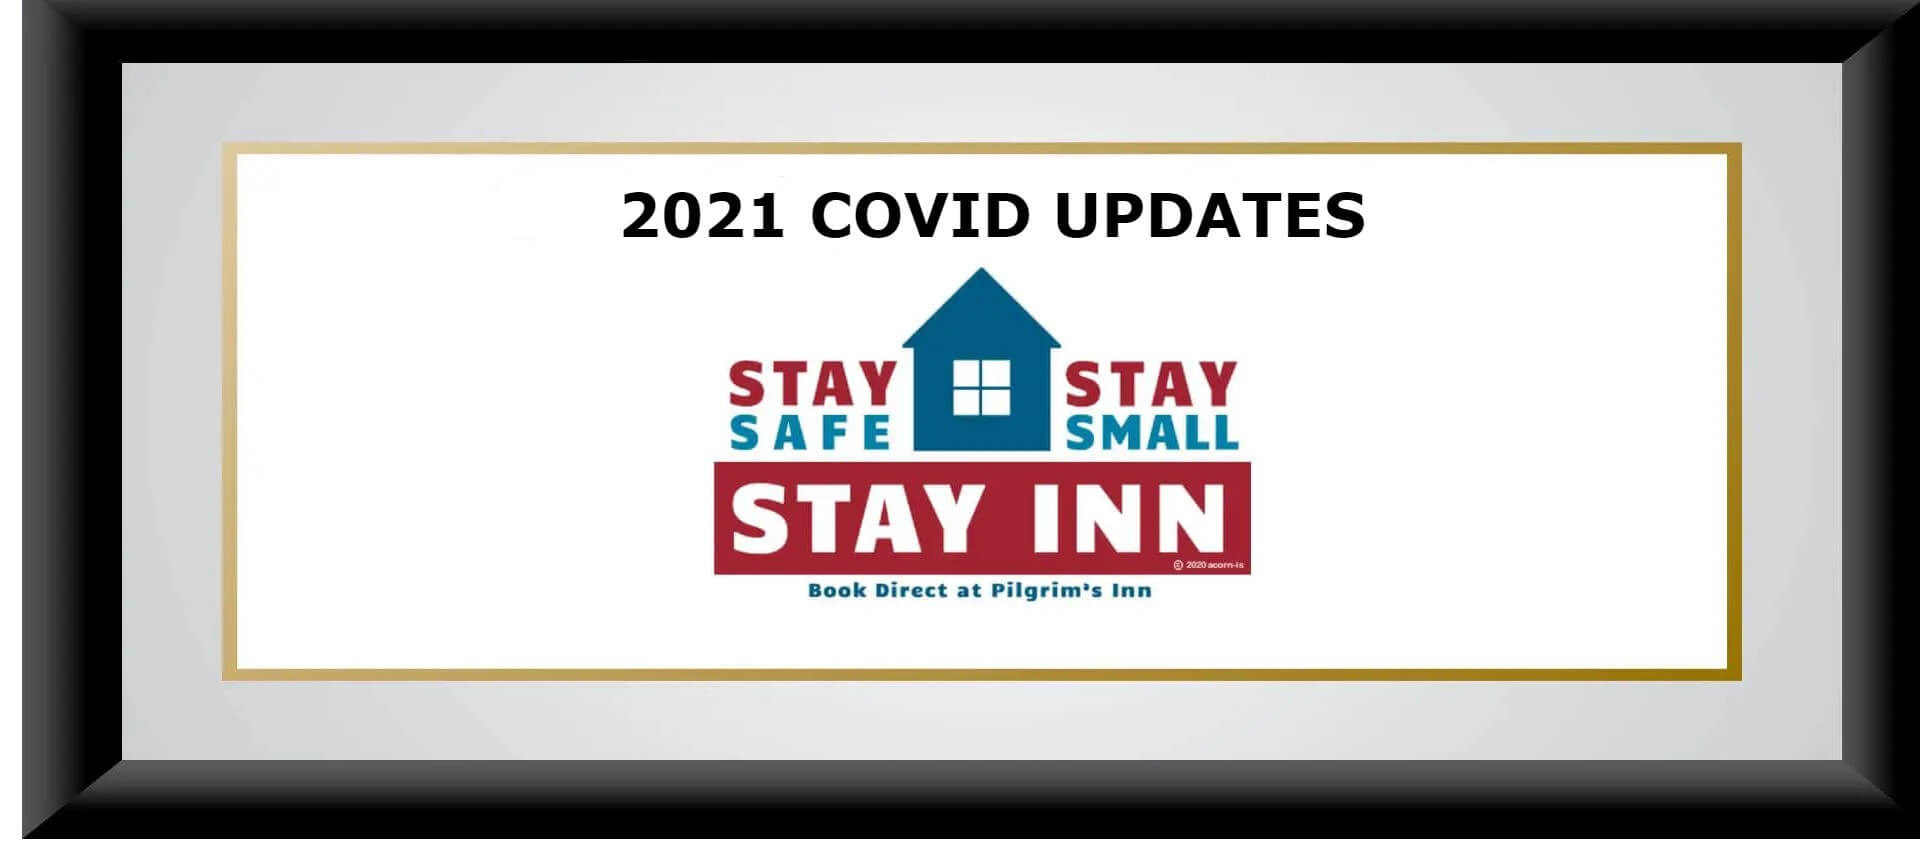 Text that says Stay safe, Stay Small, Stay inn with house graphic in red, white and blue, the words 2021 COVID Updates